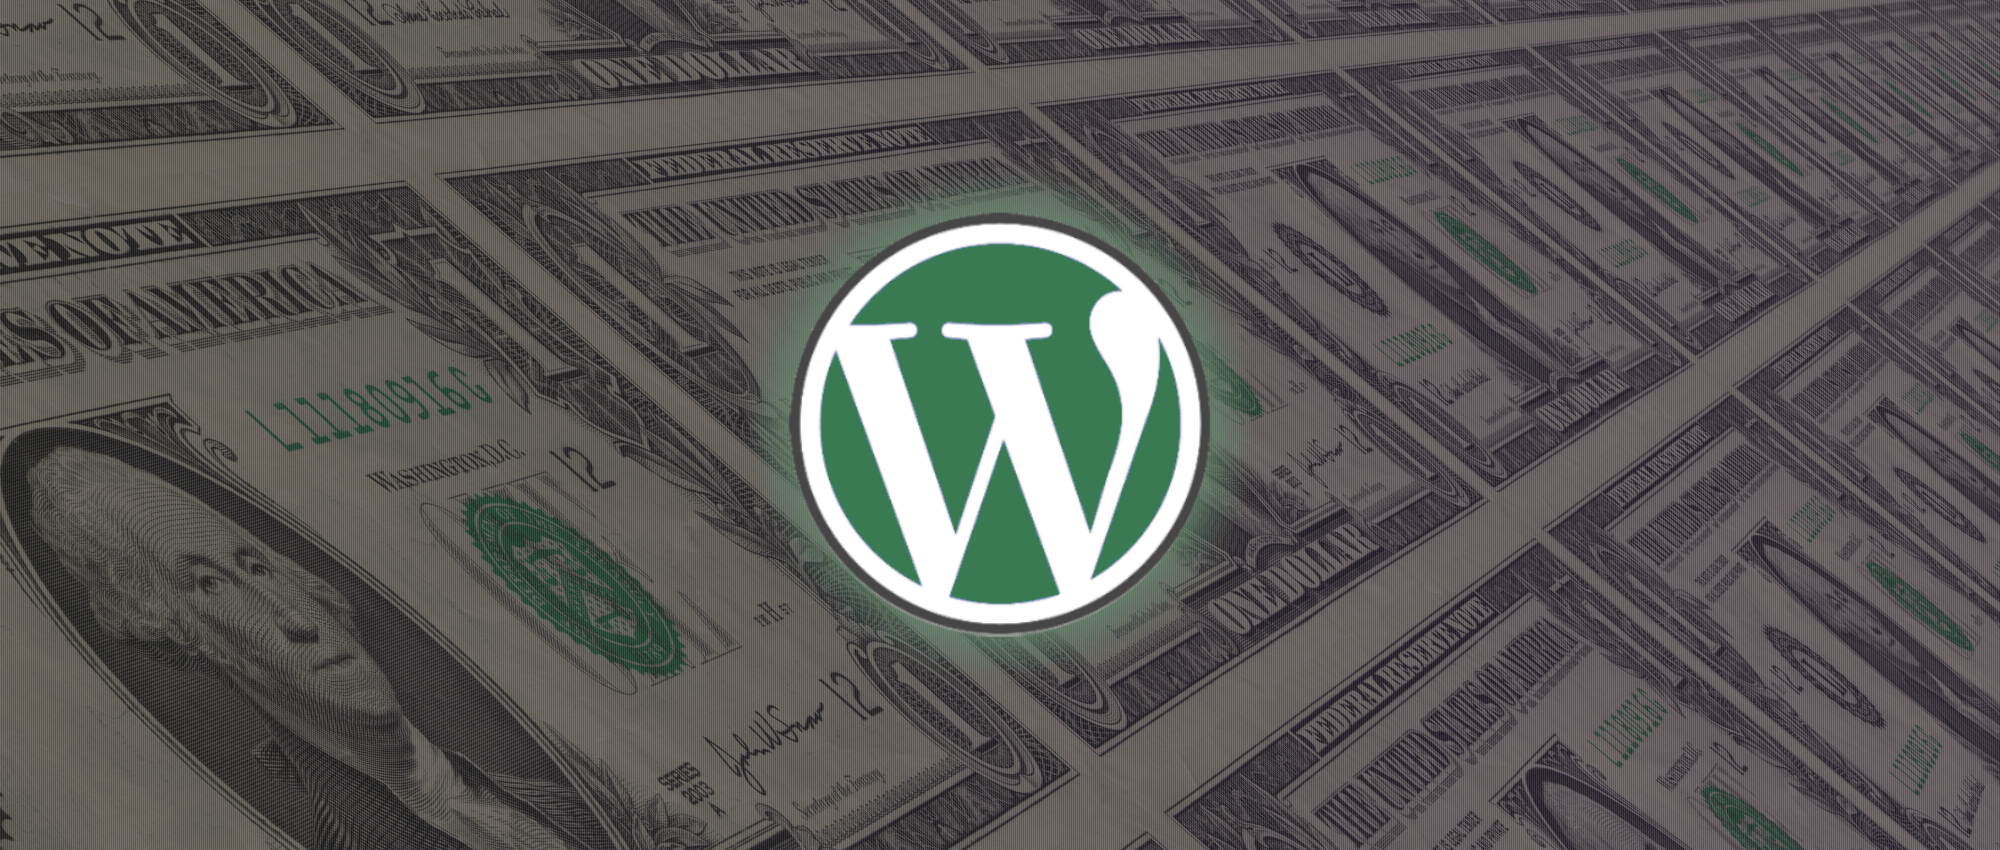 An abstract representation of making money with WordPress.